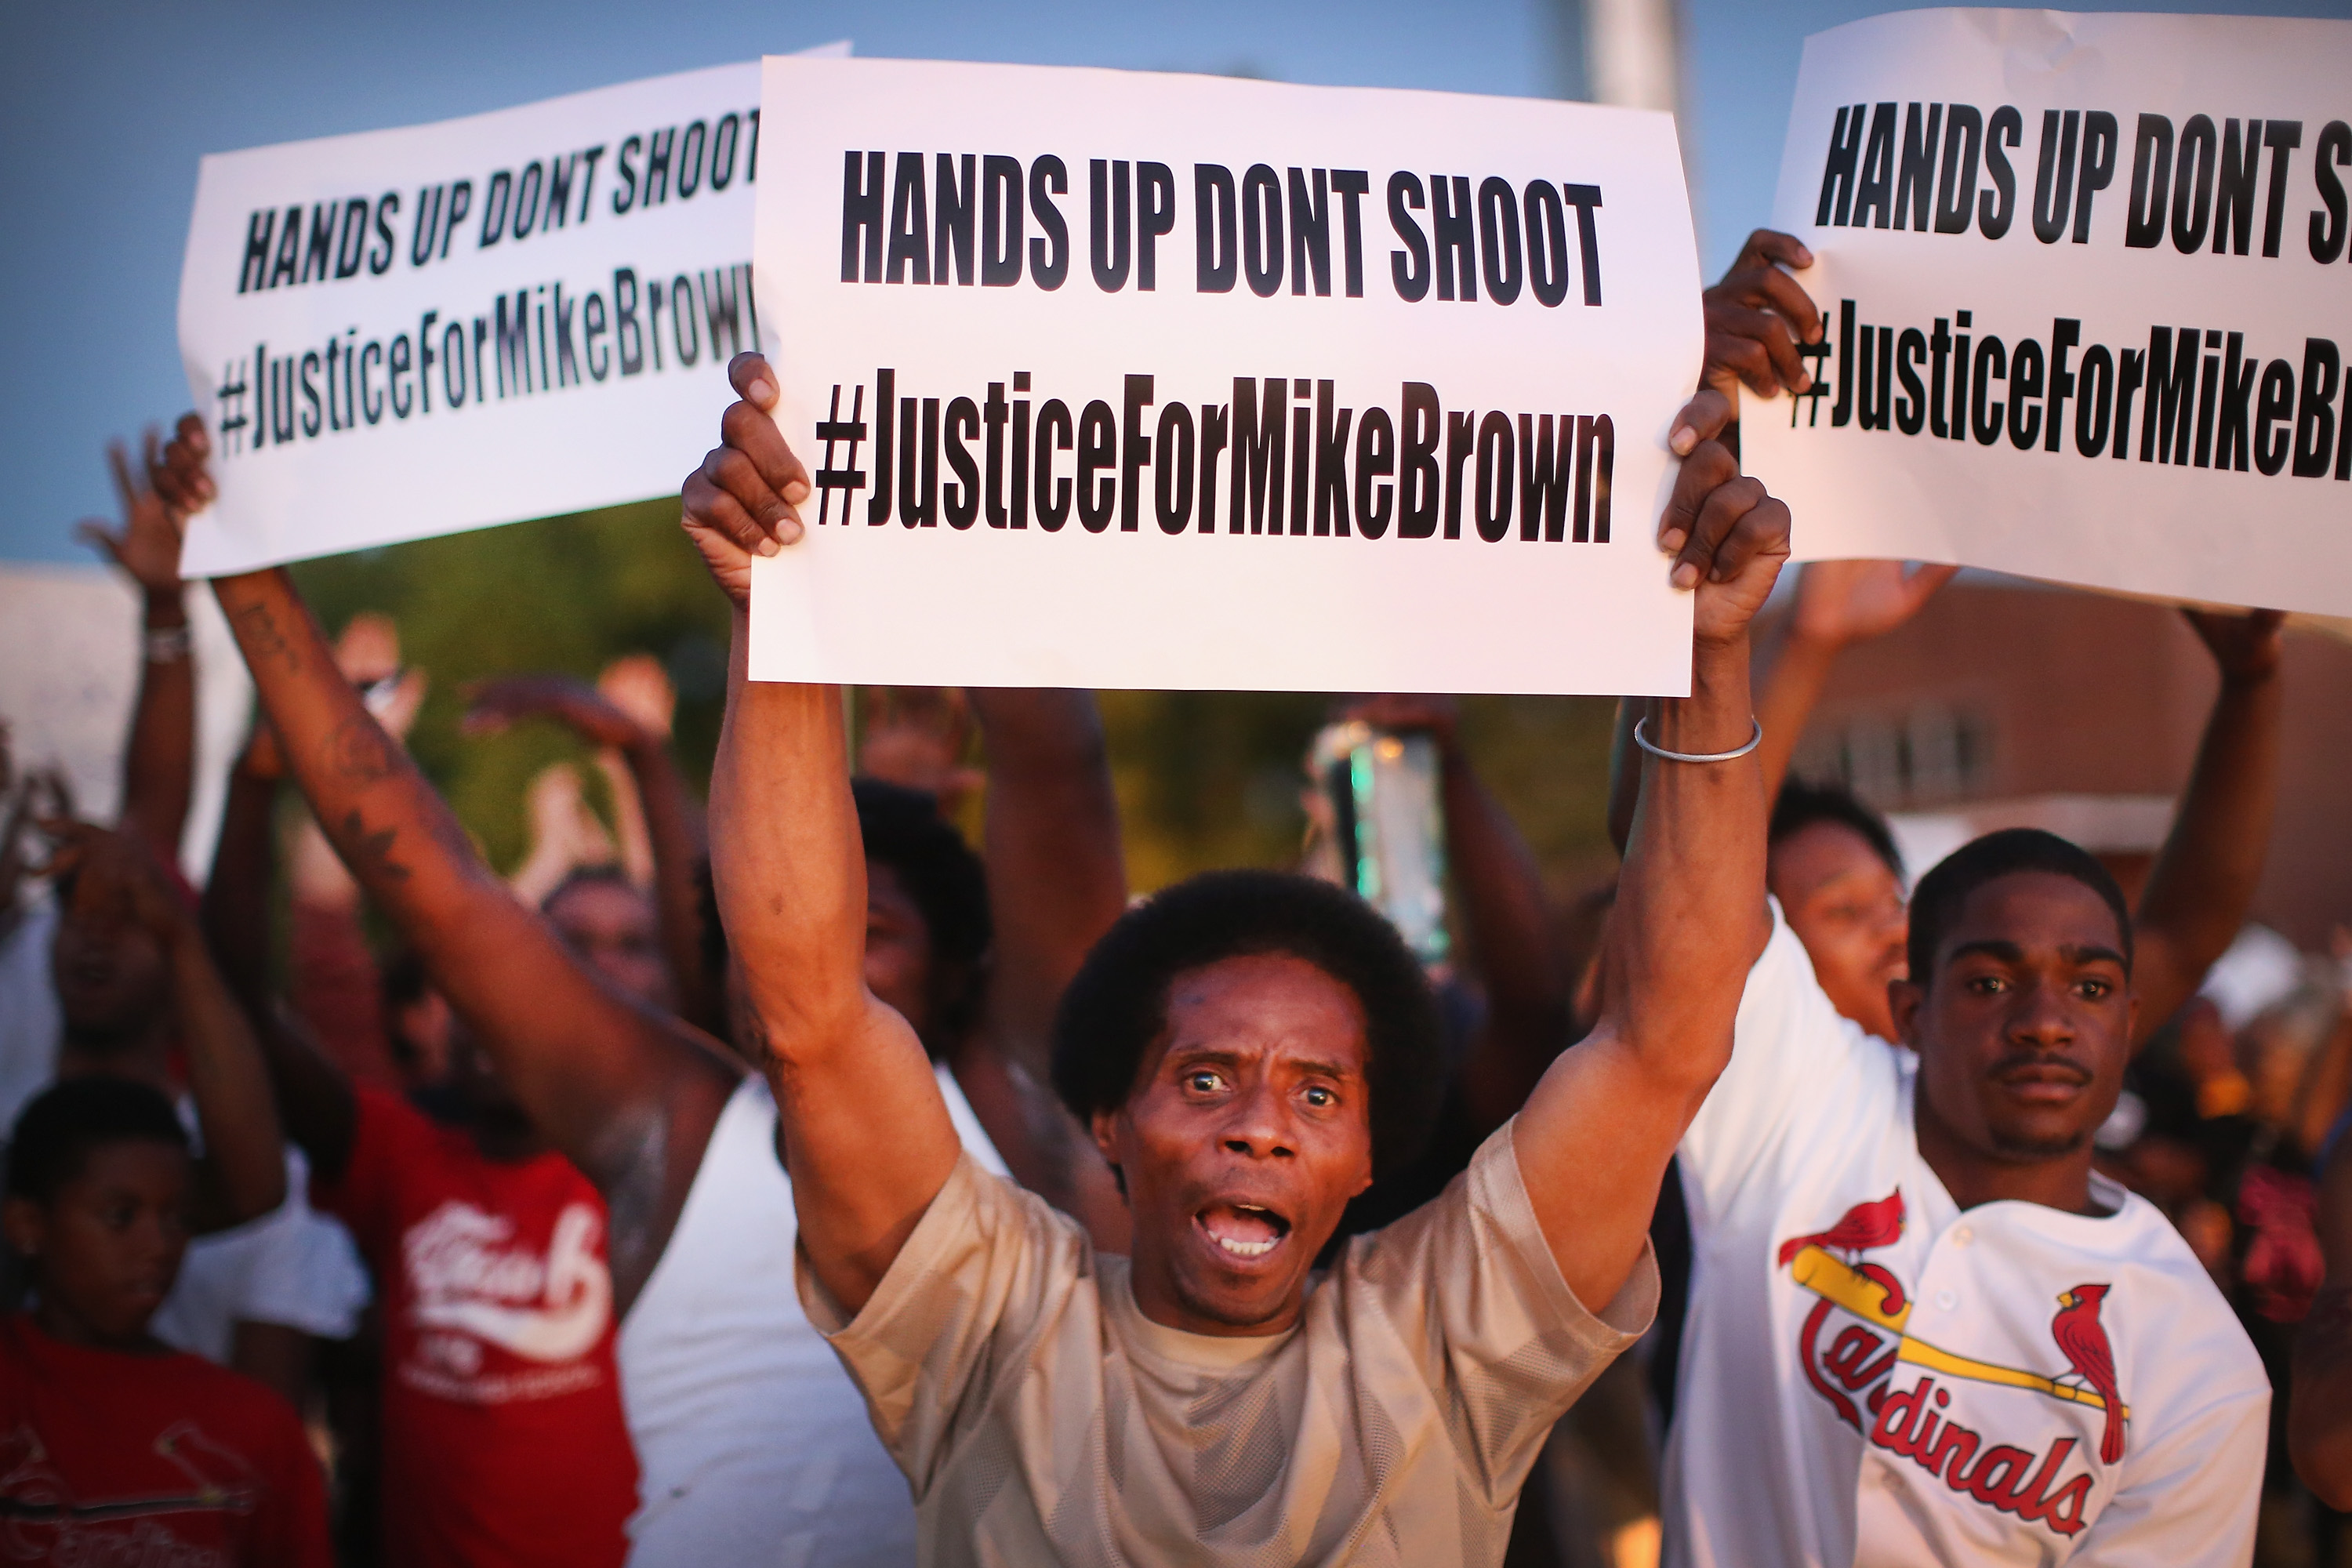 ST. LOUIS, MO - AUGUST 12: Demonstrators protest the killing of teenager Michael Brown outside Greater St. Marks Family Church while Browns family along with civil rights leader Rev. Al Sharpton and a capacity crowd of guests met inside to discuss the killing on August 12, 2014 in St Louis, Missouri. Brown was shot and killed by a police officer on Saturday in the nearby suburb of Ferguson. Ferguson has experienced two days of violent protests since the killing but, tonight the town remained mostly peaceful.  (Photo by Scott Olson/Getty Images)